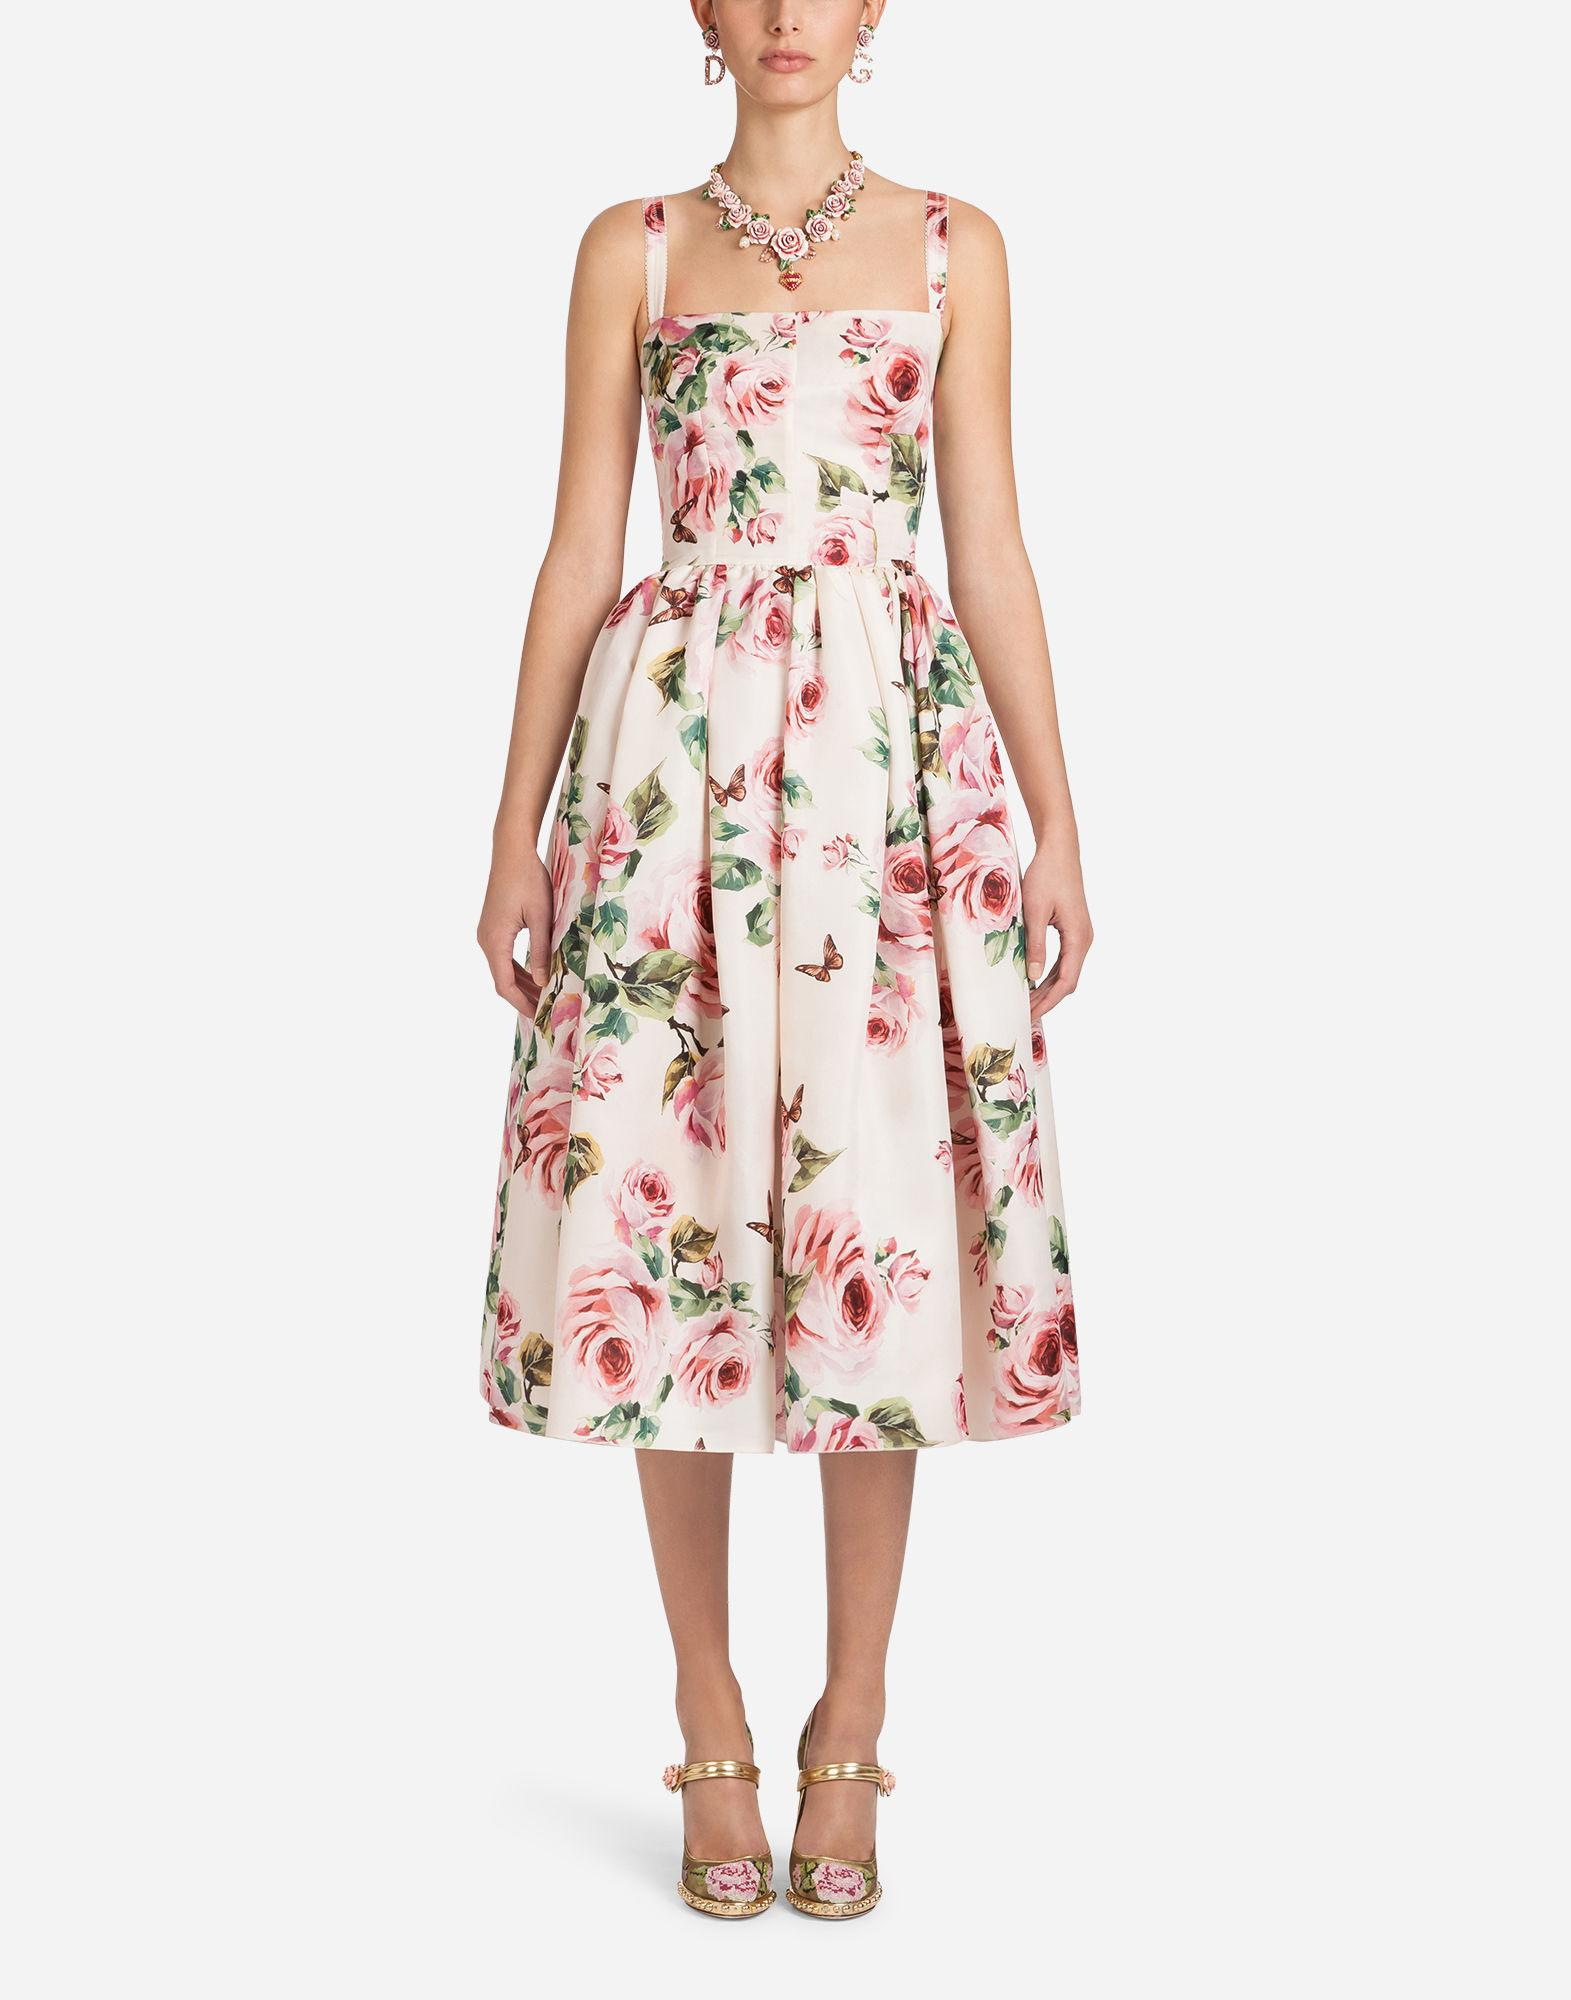 Lyst - Dolce   Gabbana Silk Organza Print Dress in Pink d47e82698